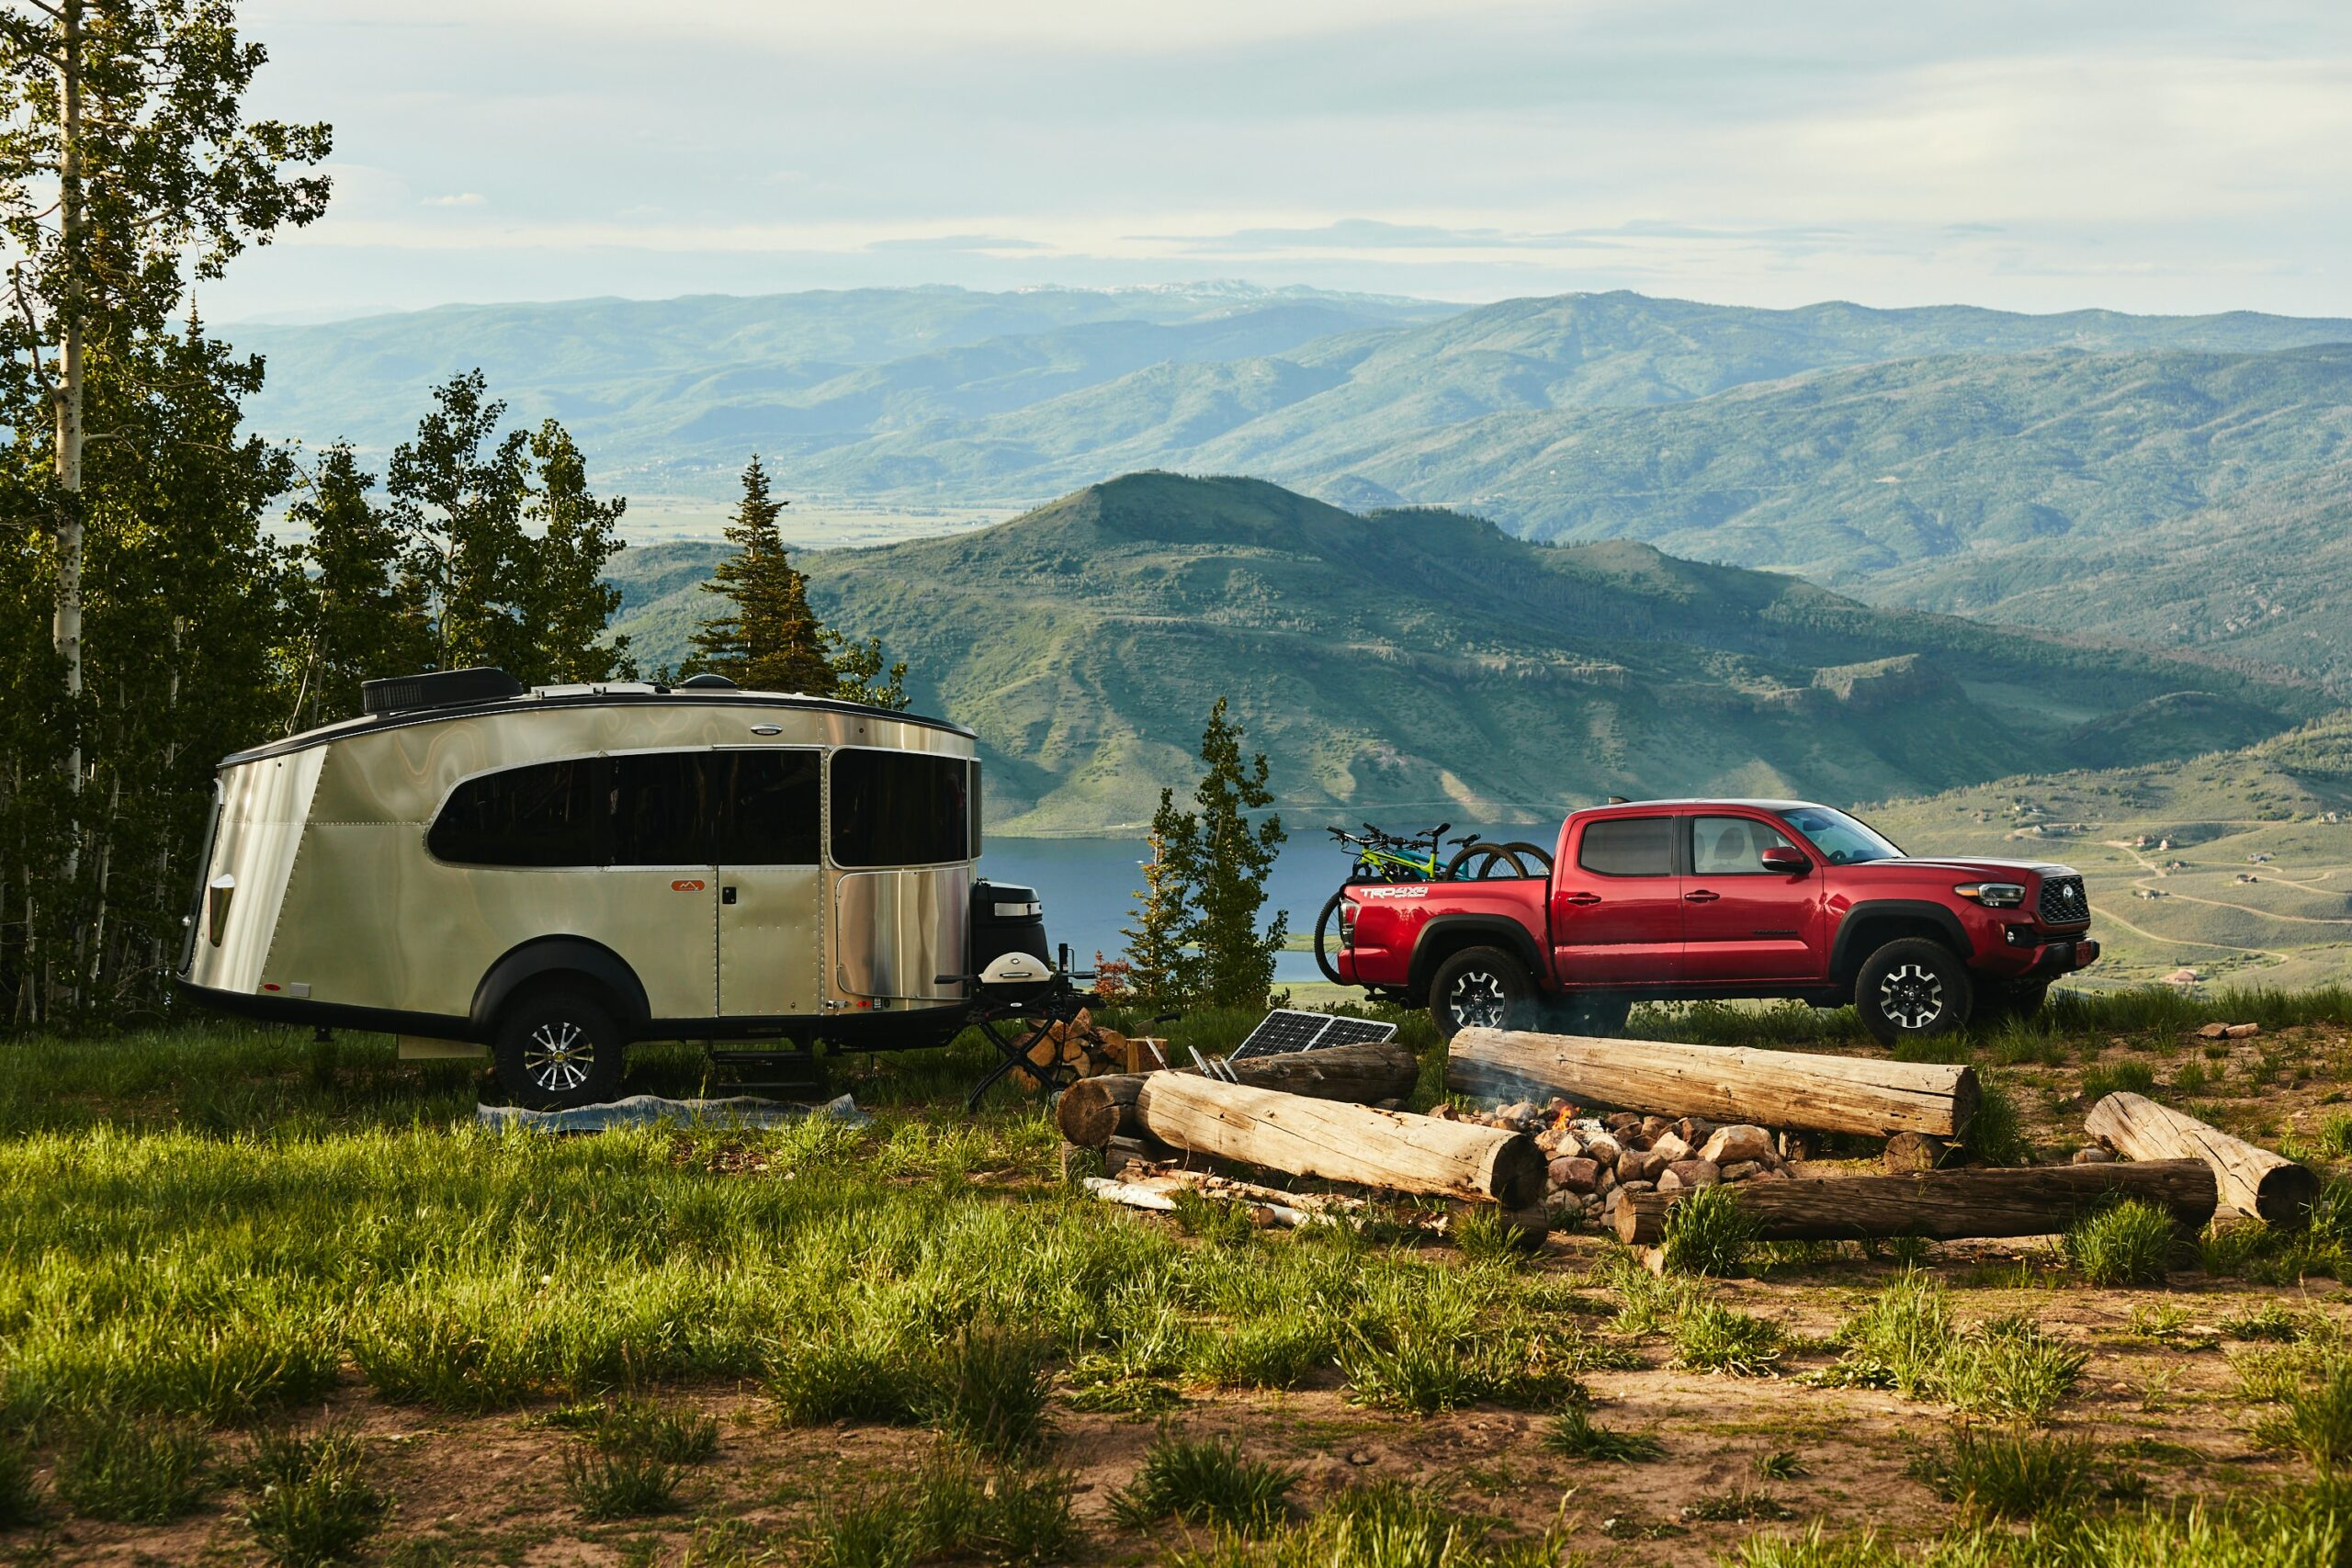 Camper with Truck in Mountains